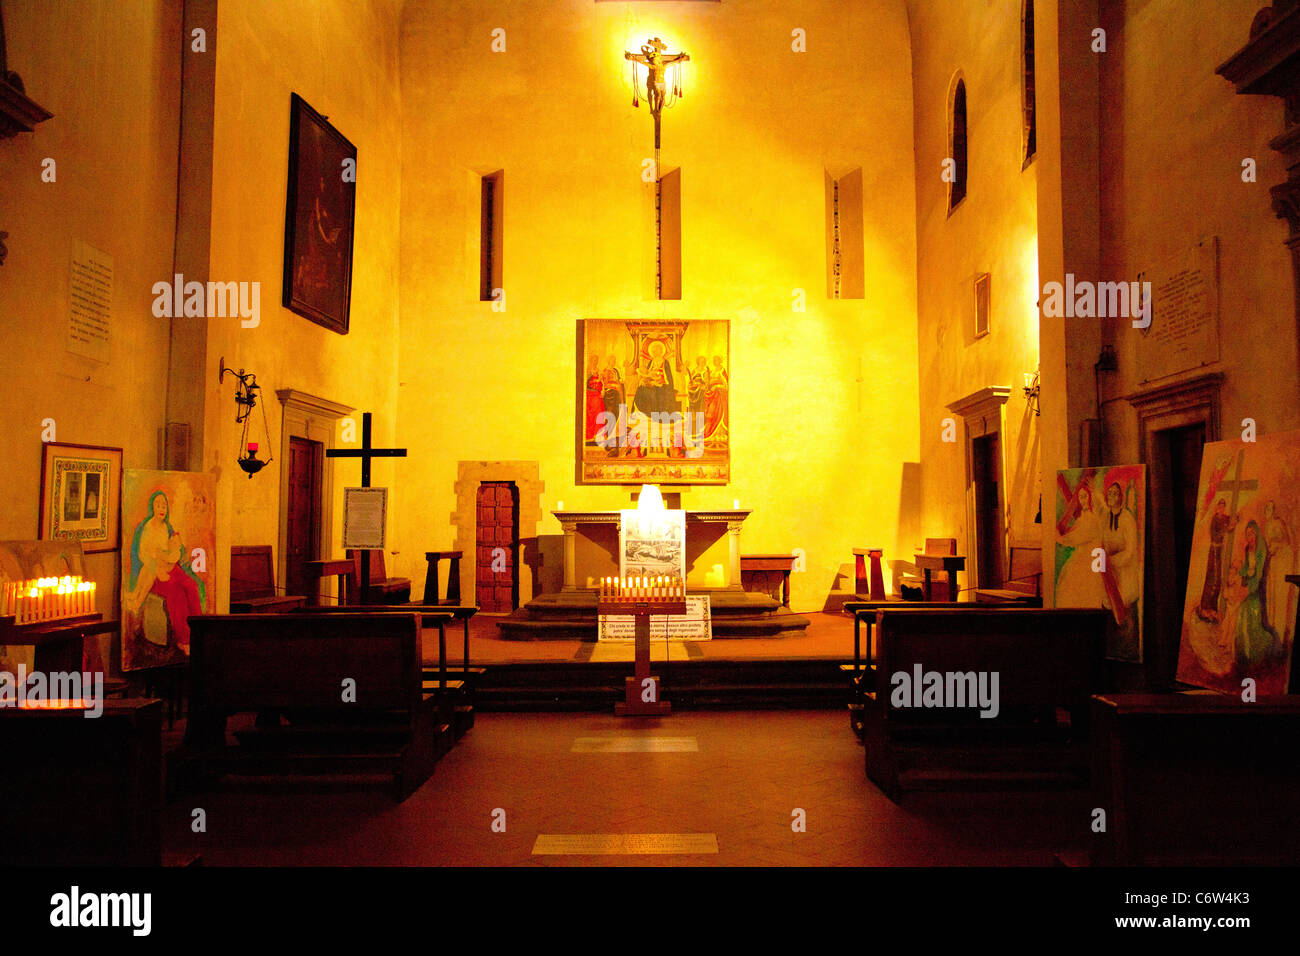 The Chiesa di Dante (Dante's Church) also known as Church of Saint Margaret in Florence Italy. - Stock Image